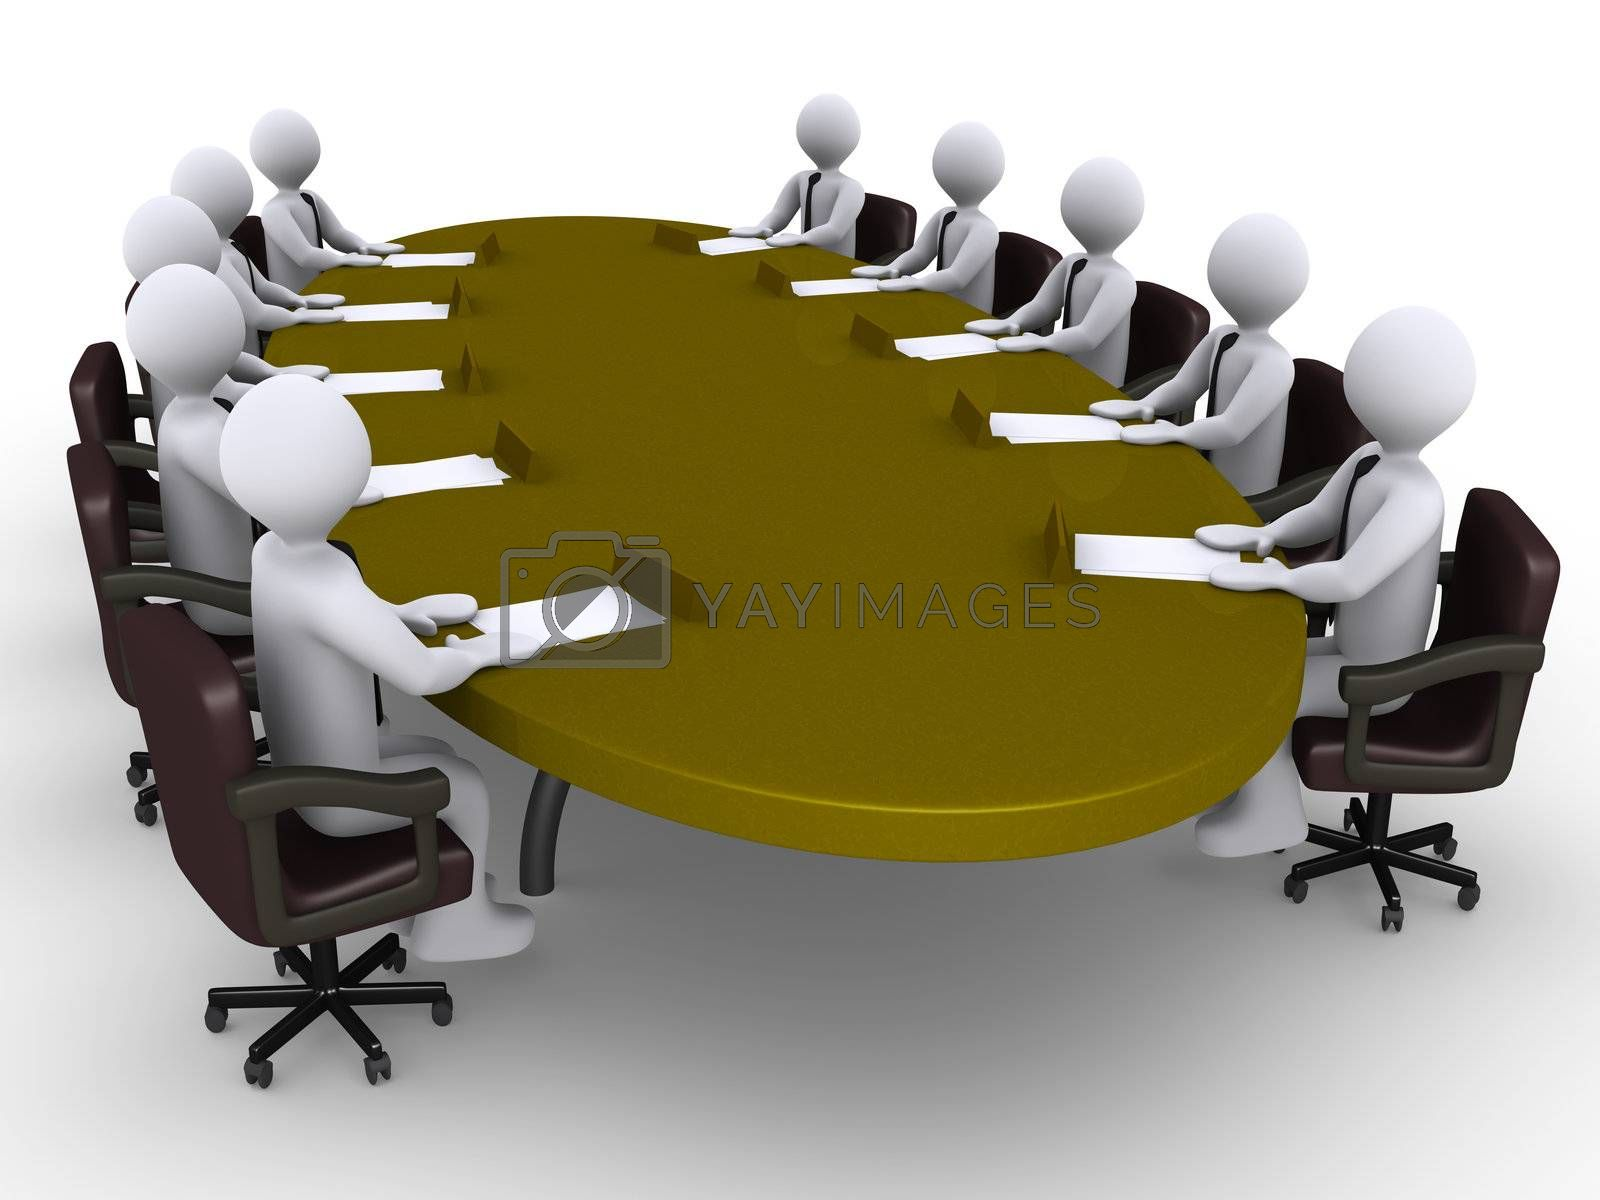 Businessmen sitting around an oval table as a conference